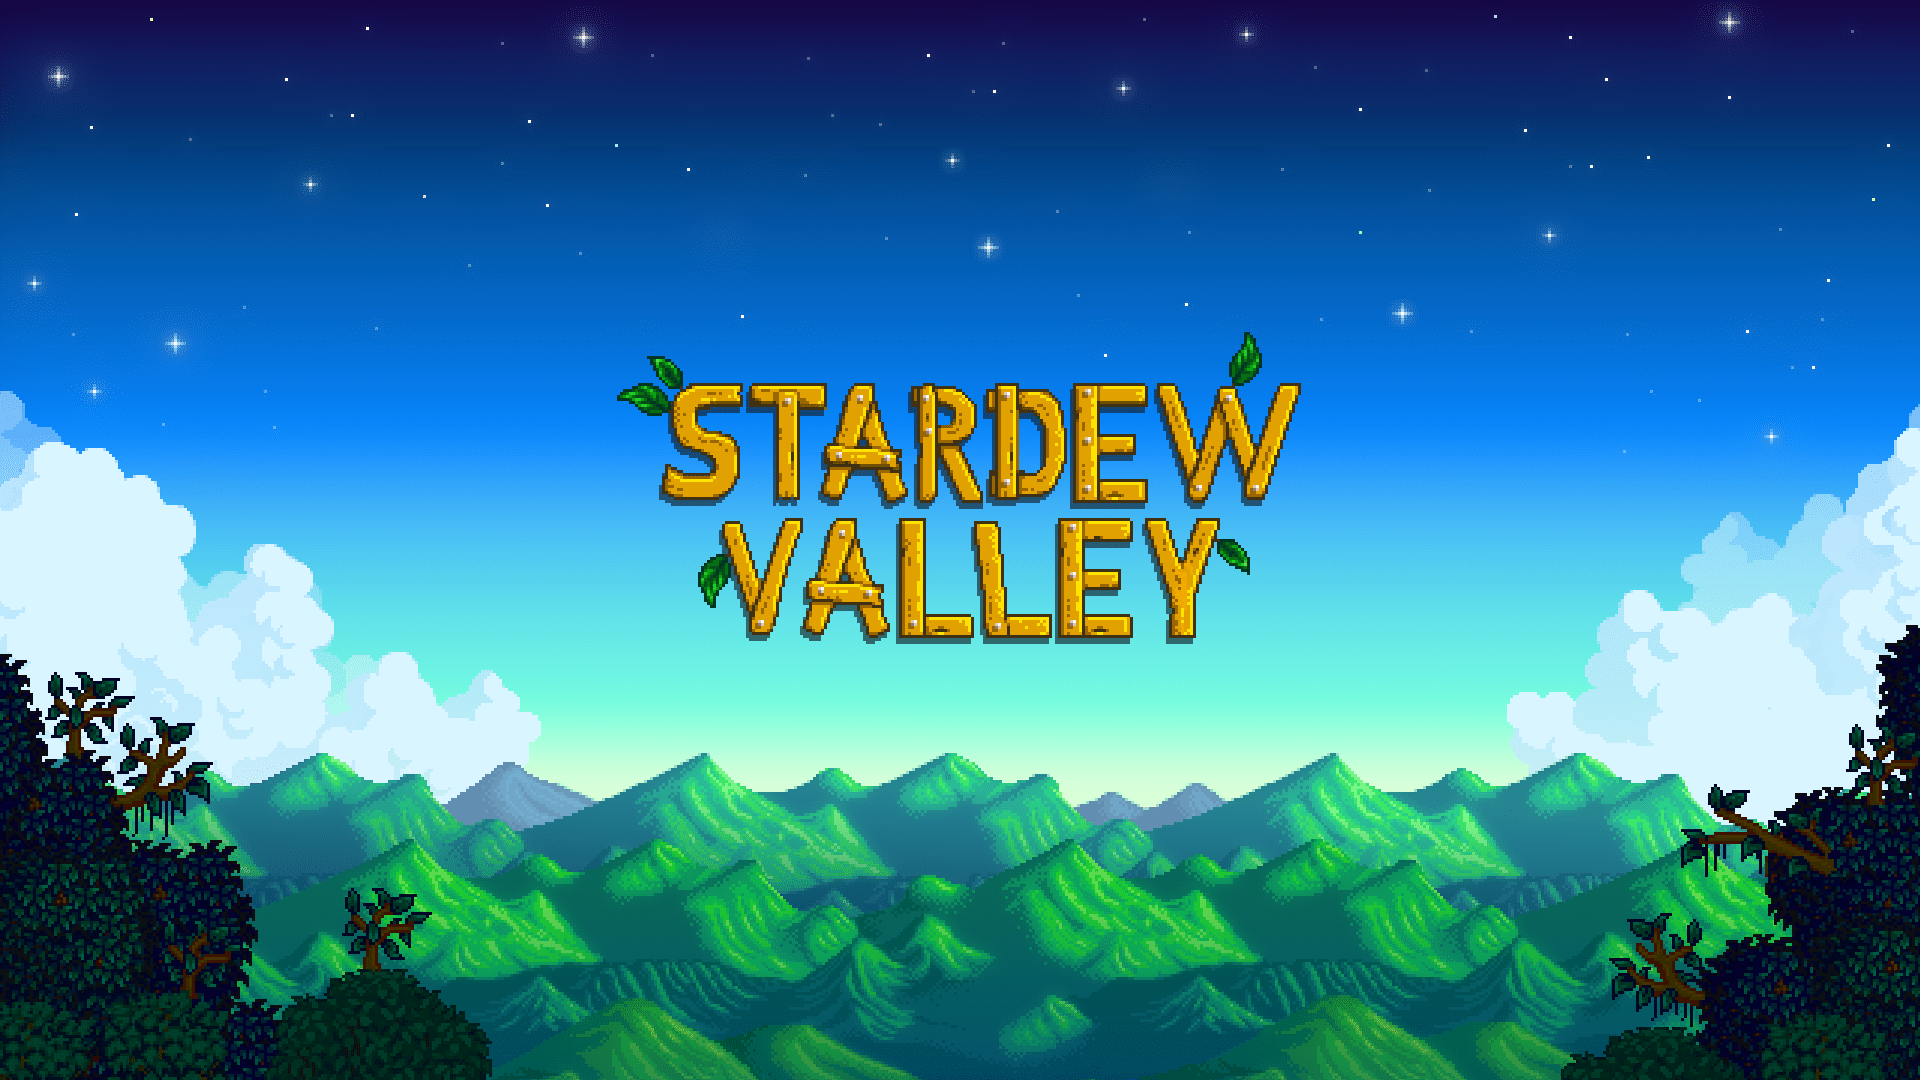 Stardew Valley – New Map & More in 1.4 Update